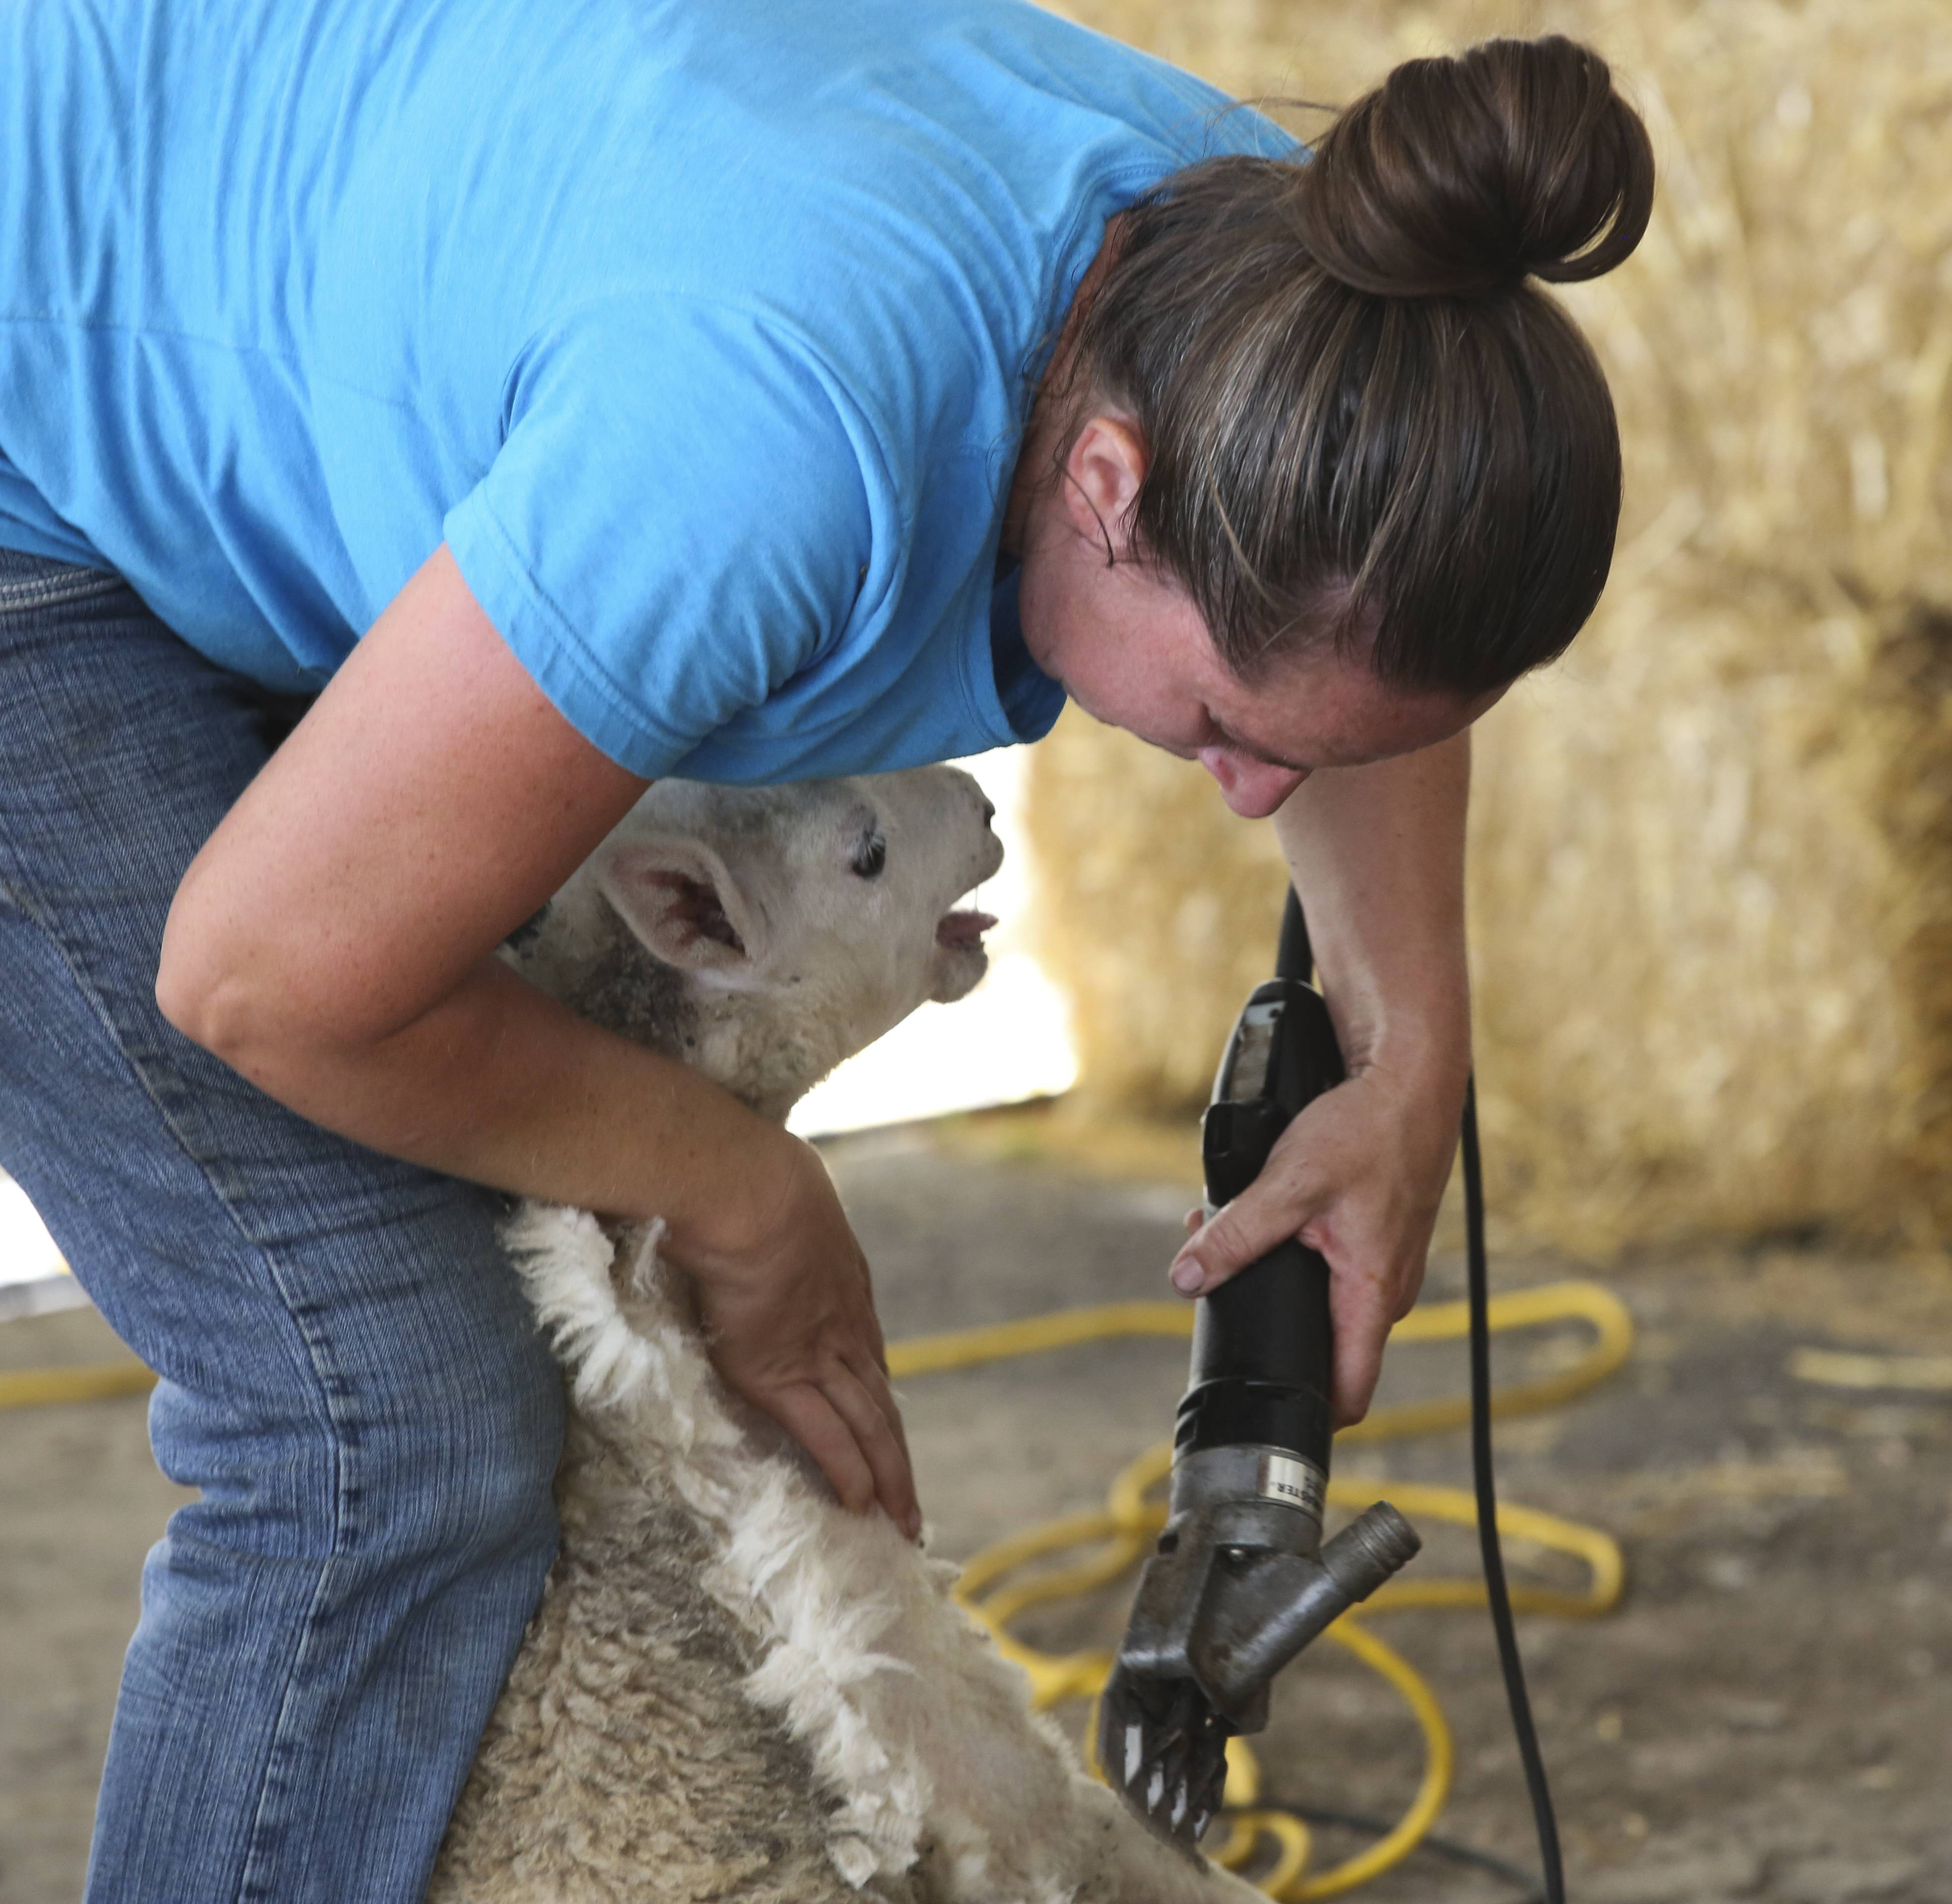 Amanda Manley gives a demonstration of sheep shearing on a Cheviot lamb during the opening day of the DuPage County Fair.